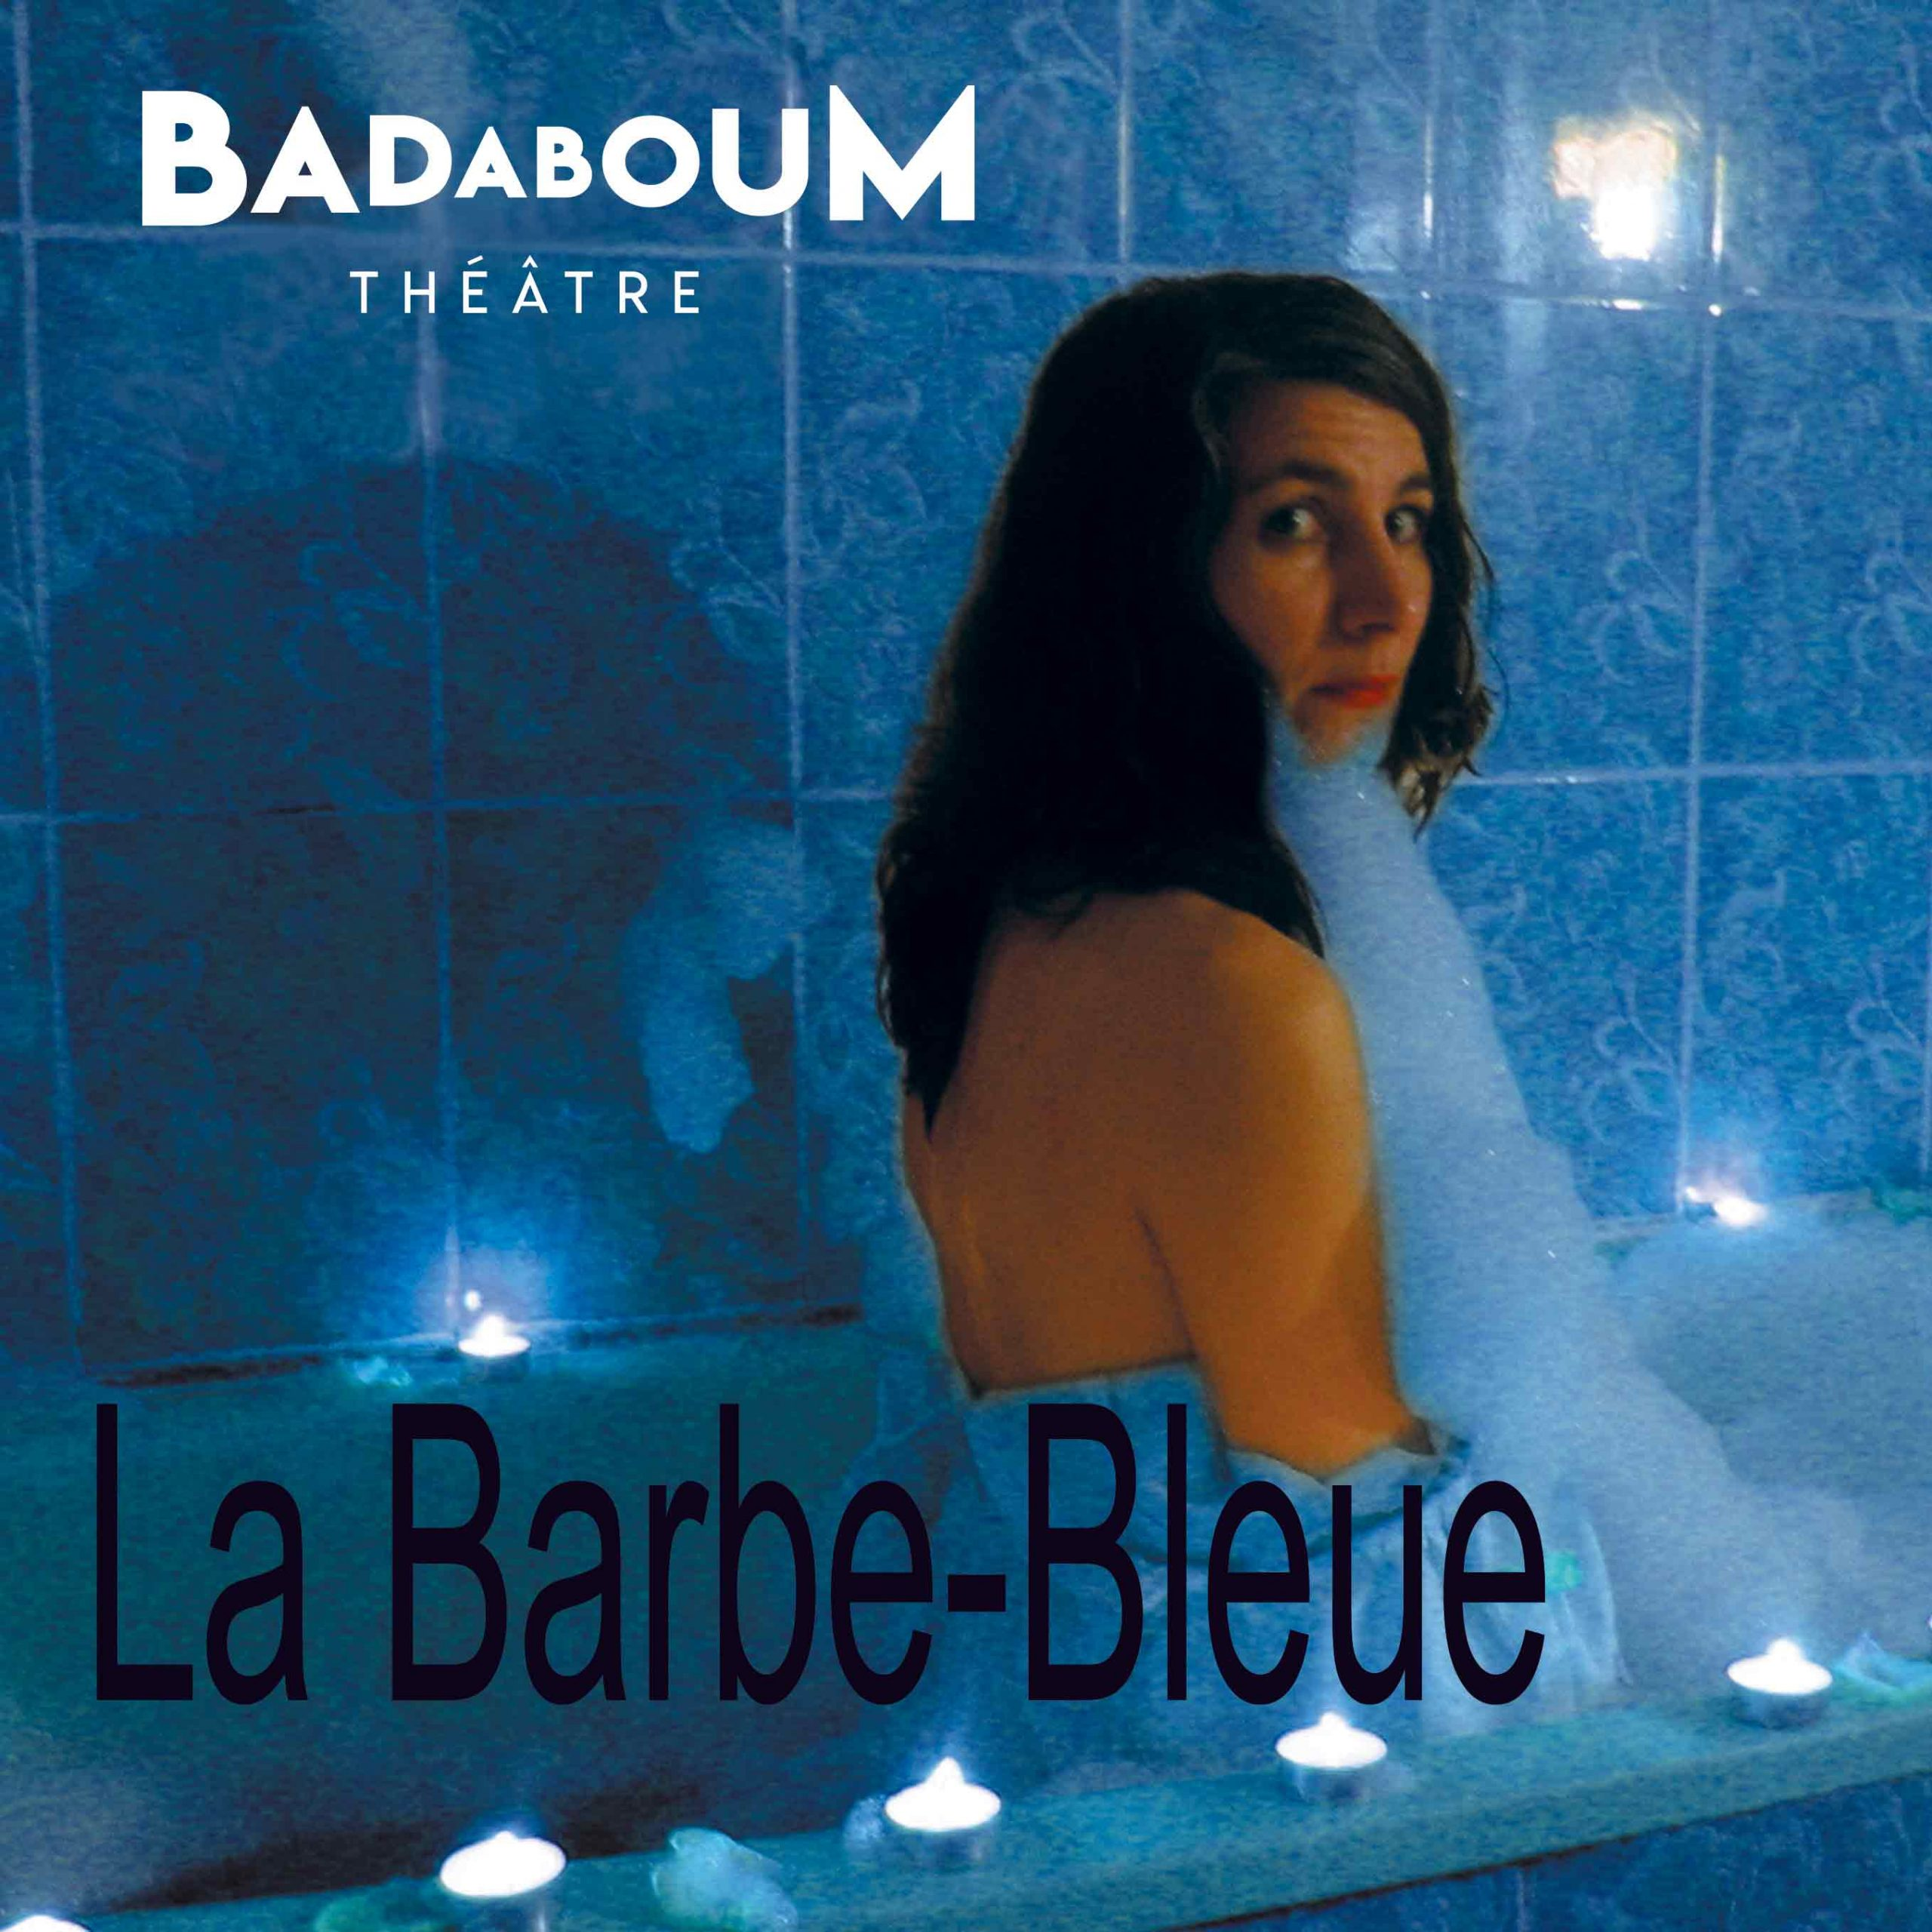 Affiche barbe bleue spectacle enfant badaboum theatre scaled